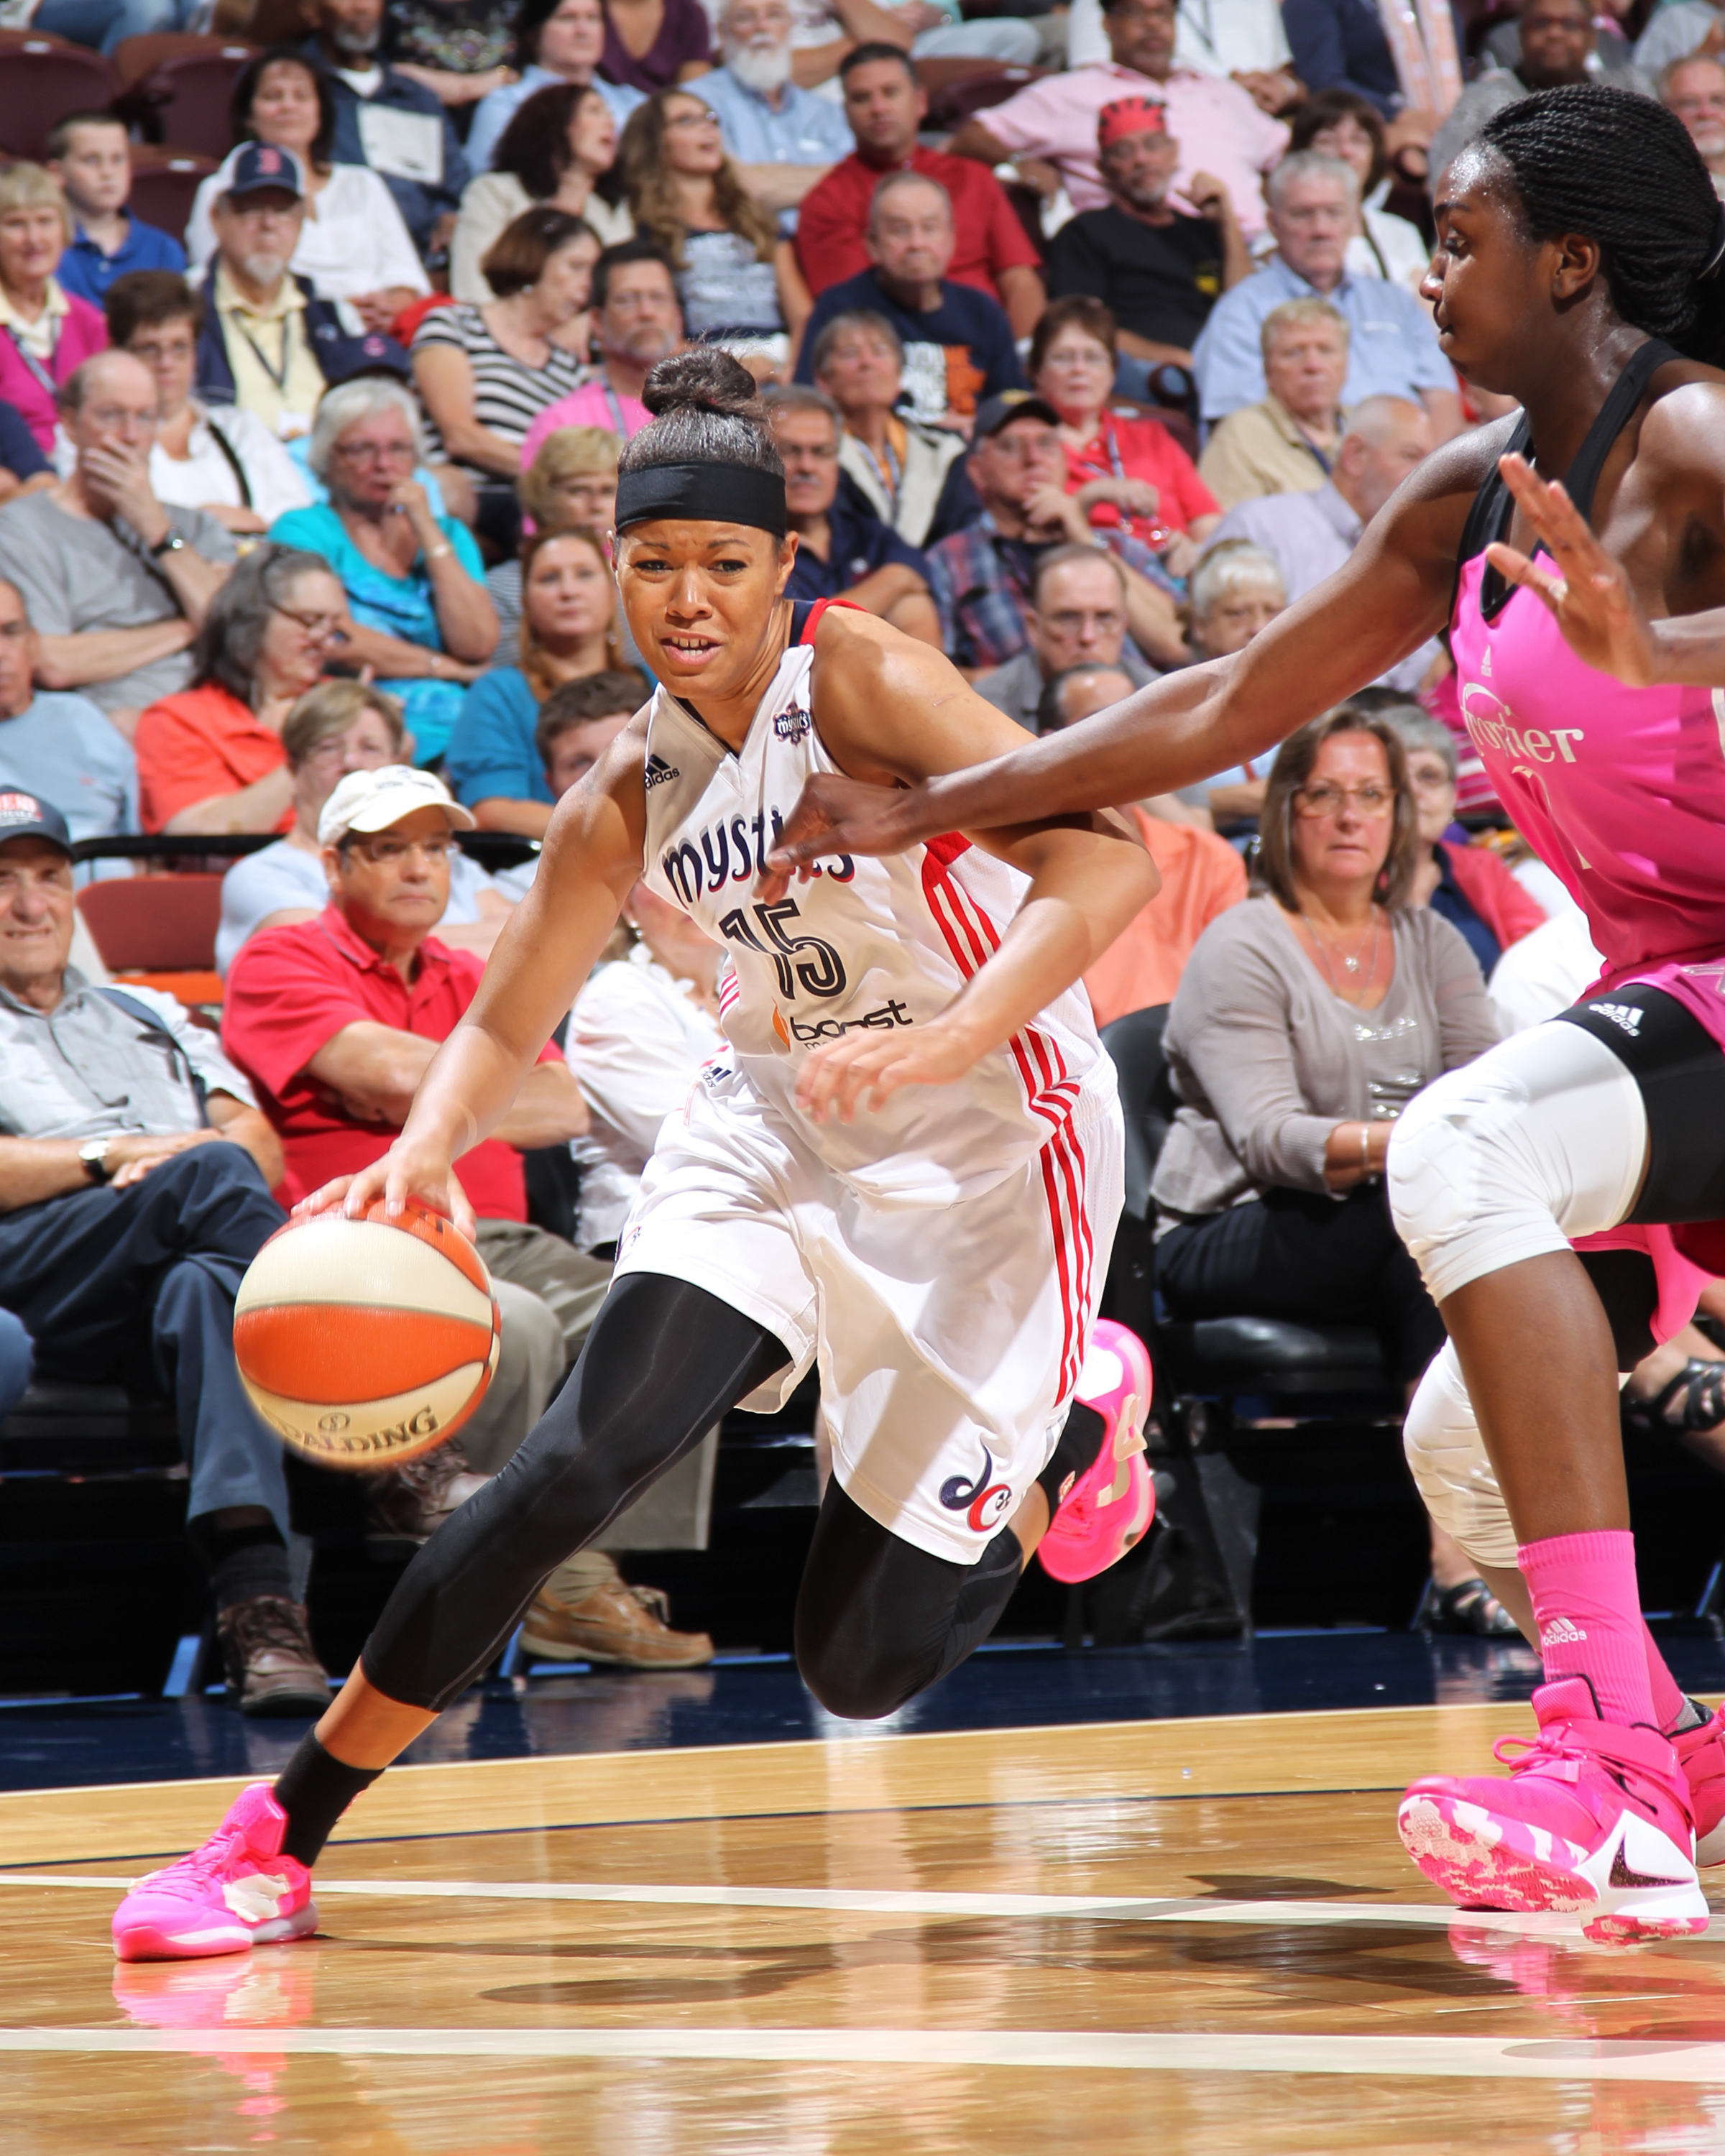 UNCASVILLE, CT - AUGUST 7:  Natasha Cloud #15 of the Washington Mystics handles the ball against the Connecticut Sun on August 7, 2015 at the Mohegan Sun Arena in Uncasville, Connecticut. (Photo by Chris Marion/NBAE via Getty Images)